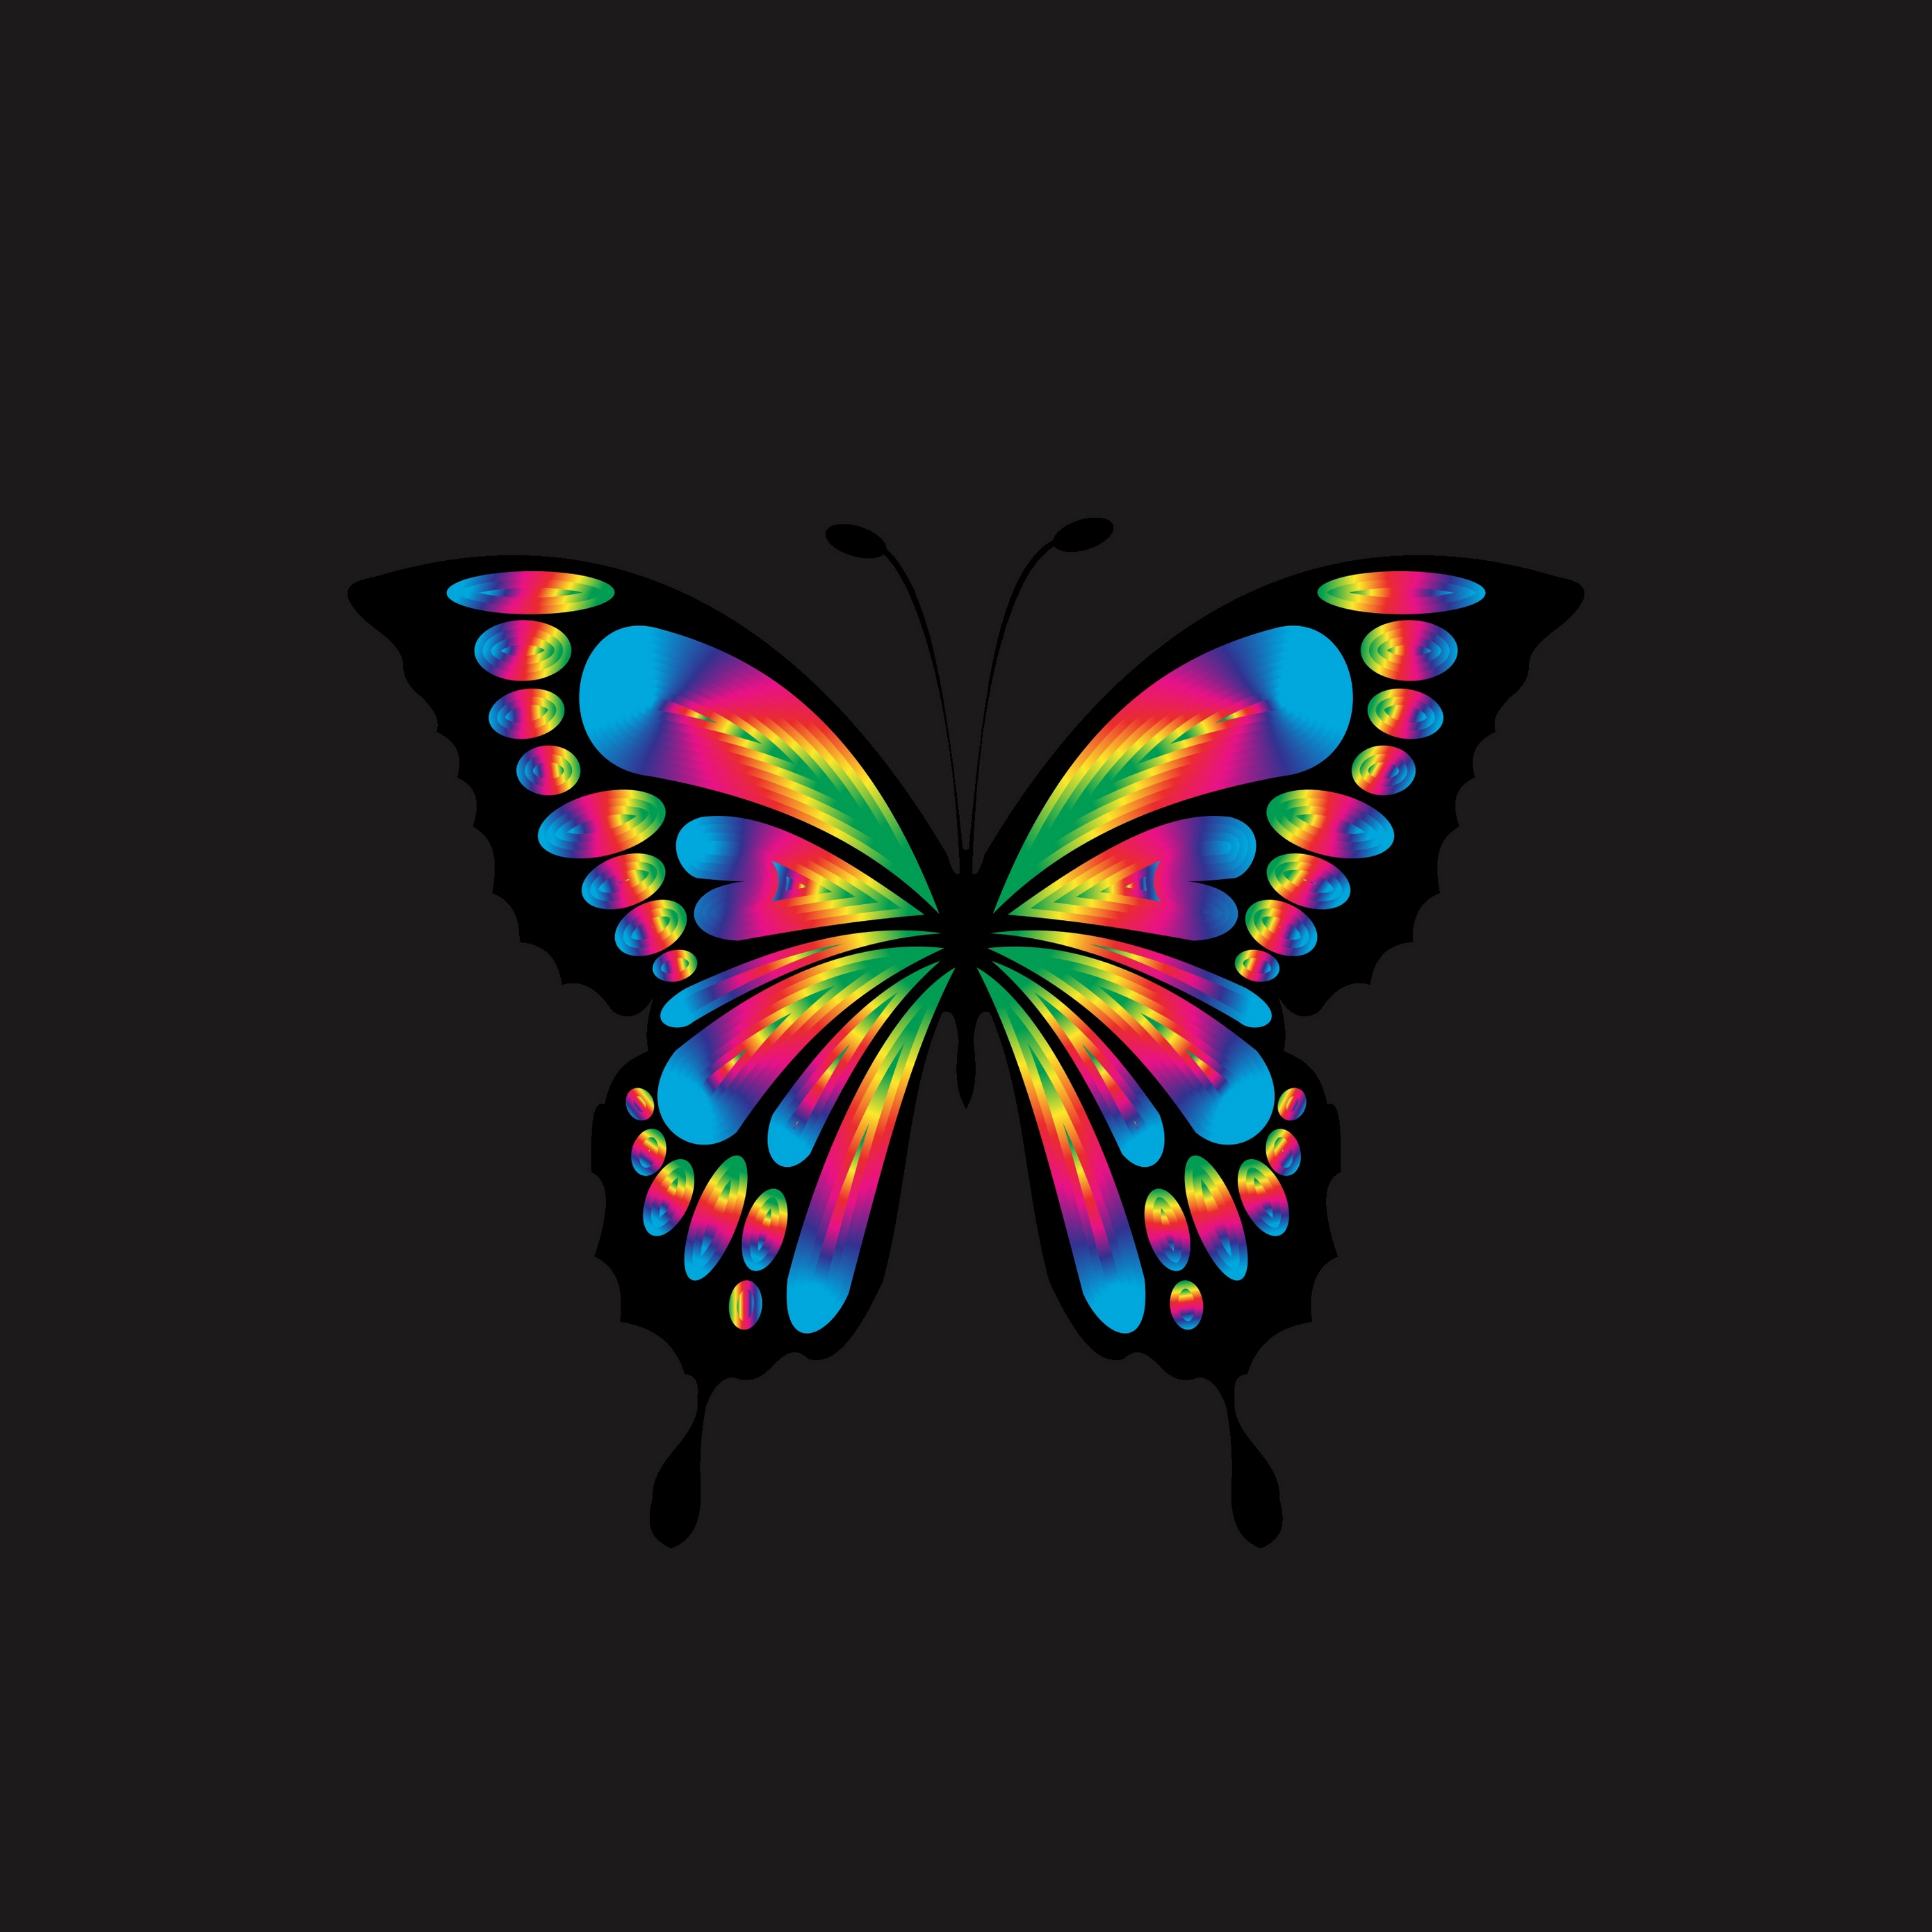 Download wallpaper 2780x2780 butterfly shine bright 2780x2780